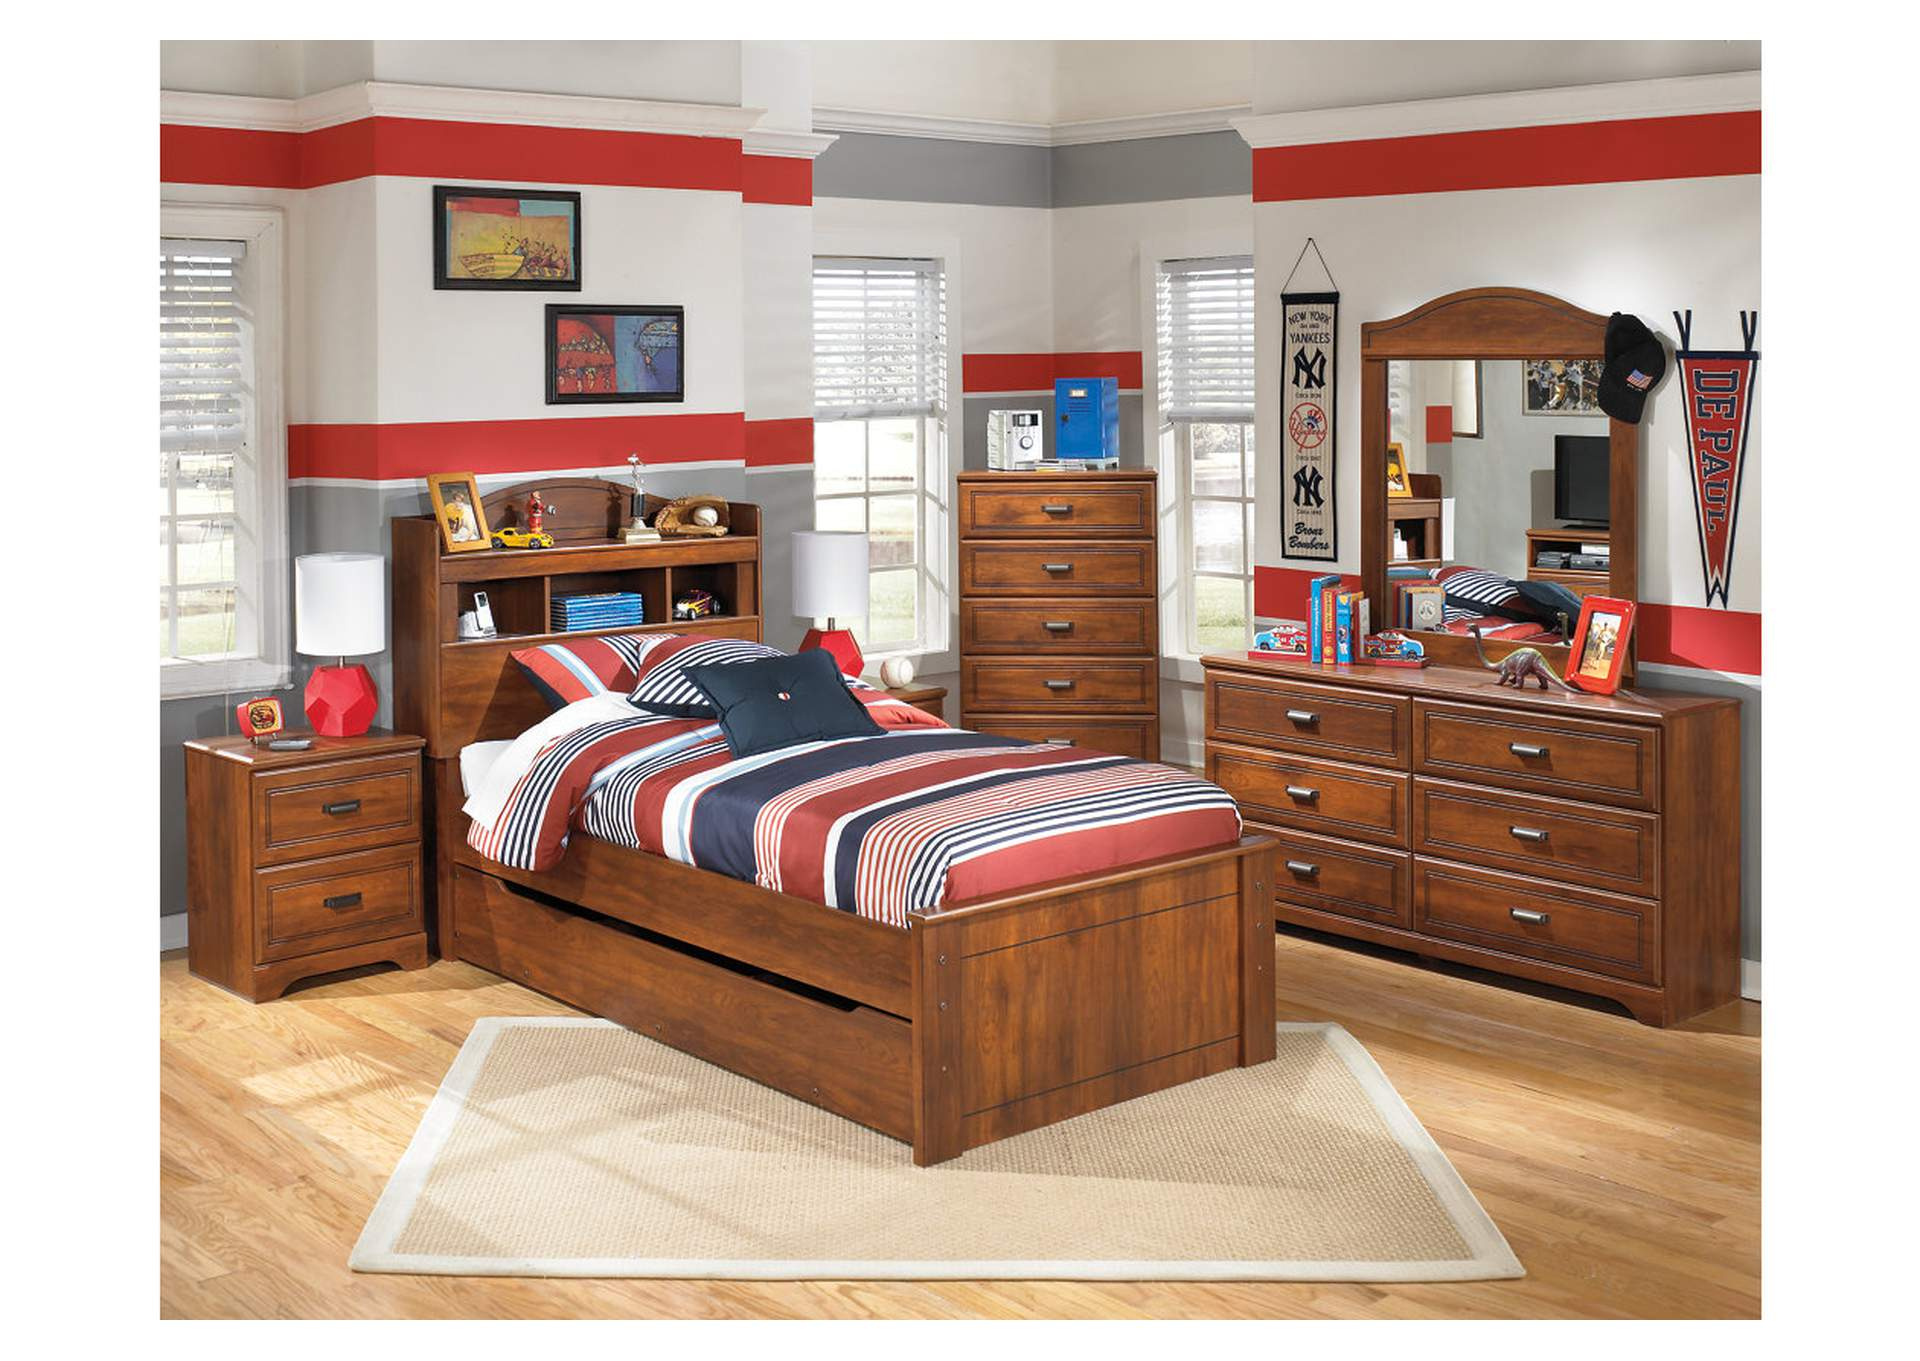 Barchan Twin Bookcase Bed w/ Trundle, Dresser & Mirror,Signature Design By Ashley